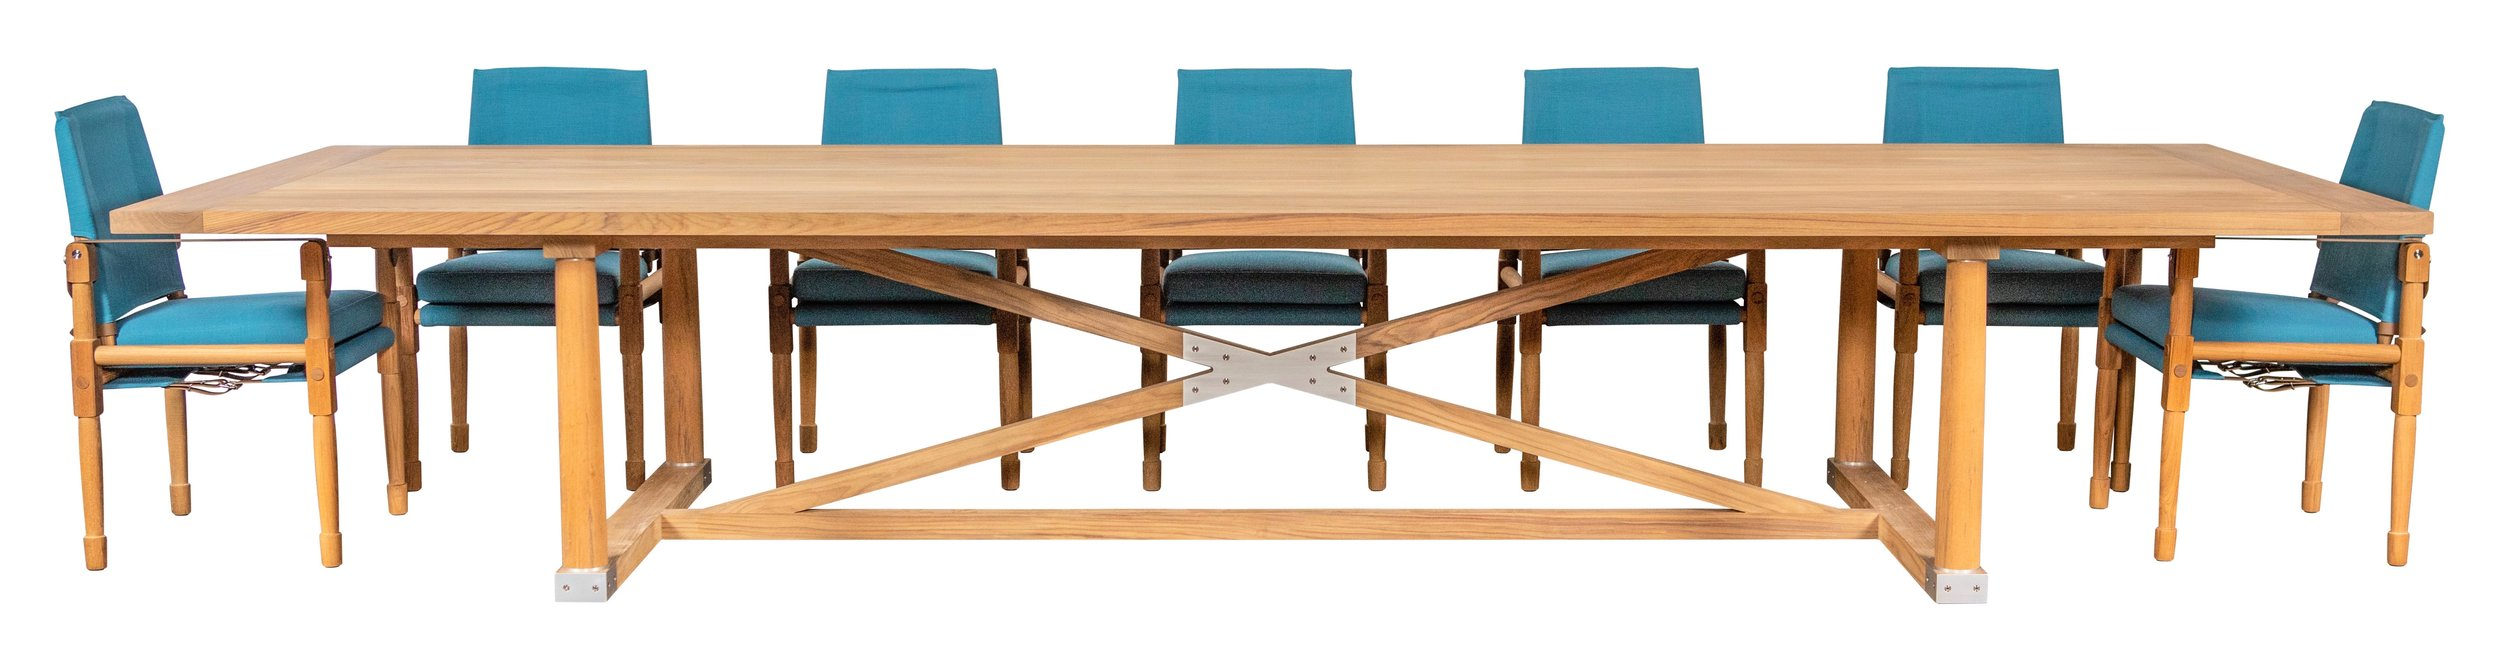 Carden Dining Table - Outdoor